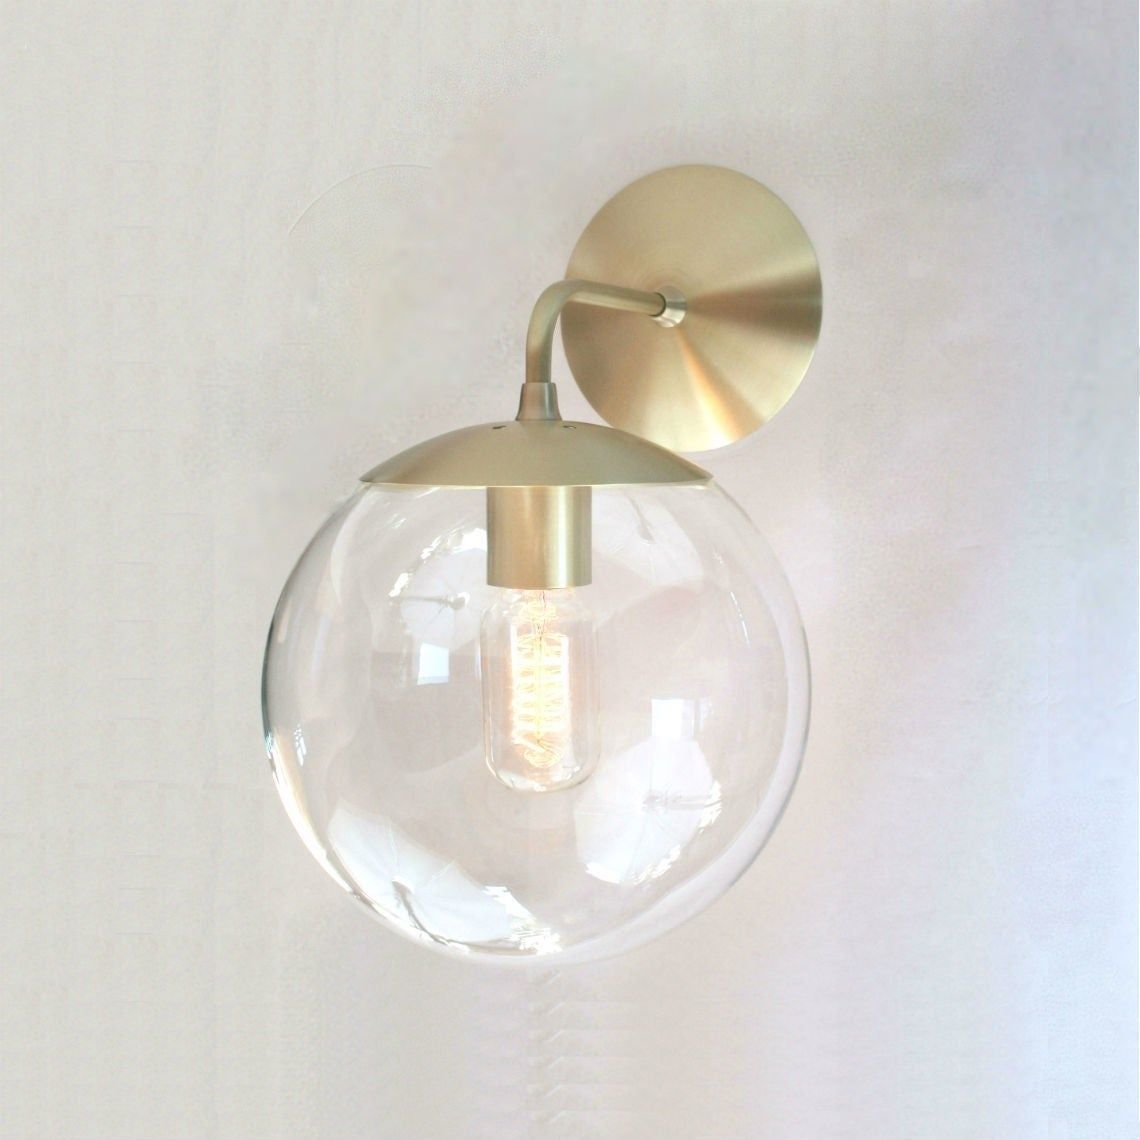 Mid century modern wall sconce 8 clear